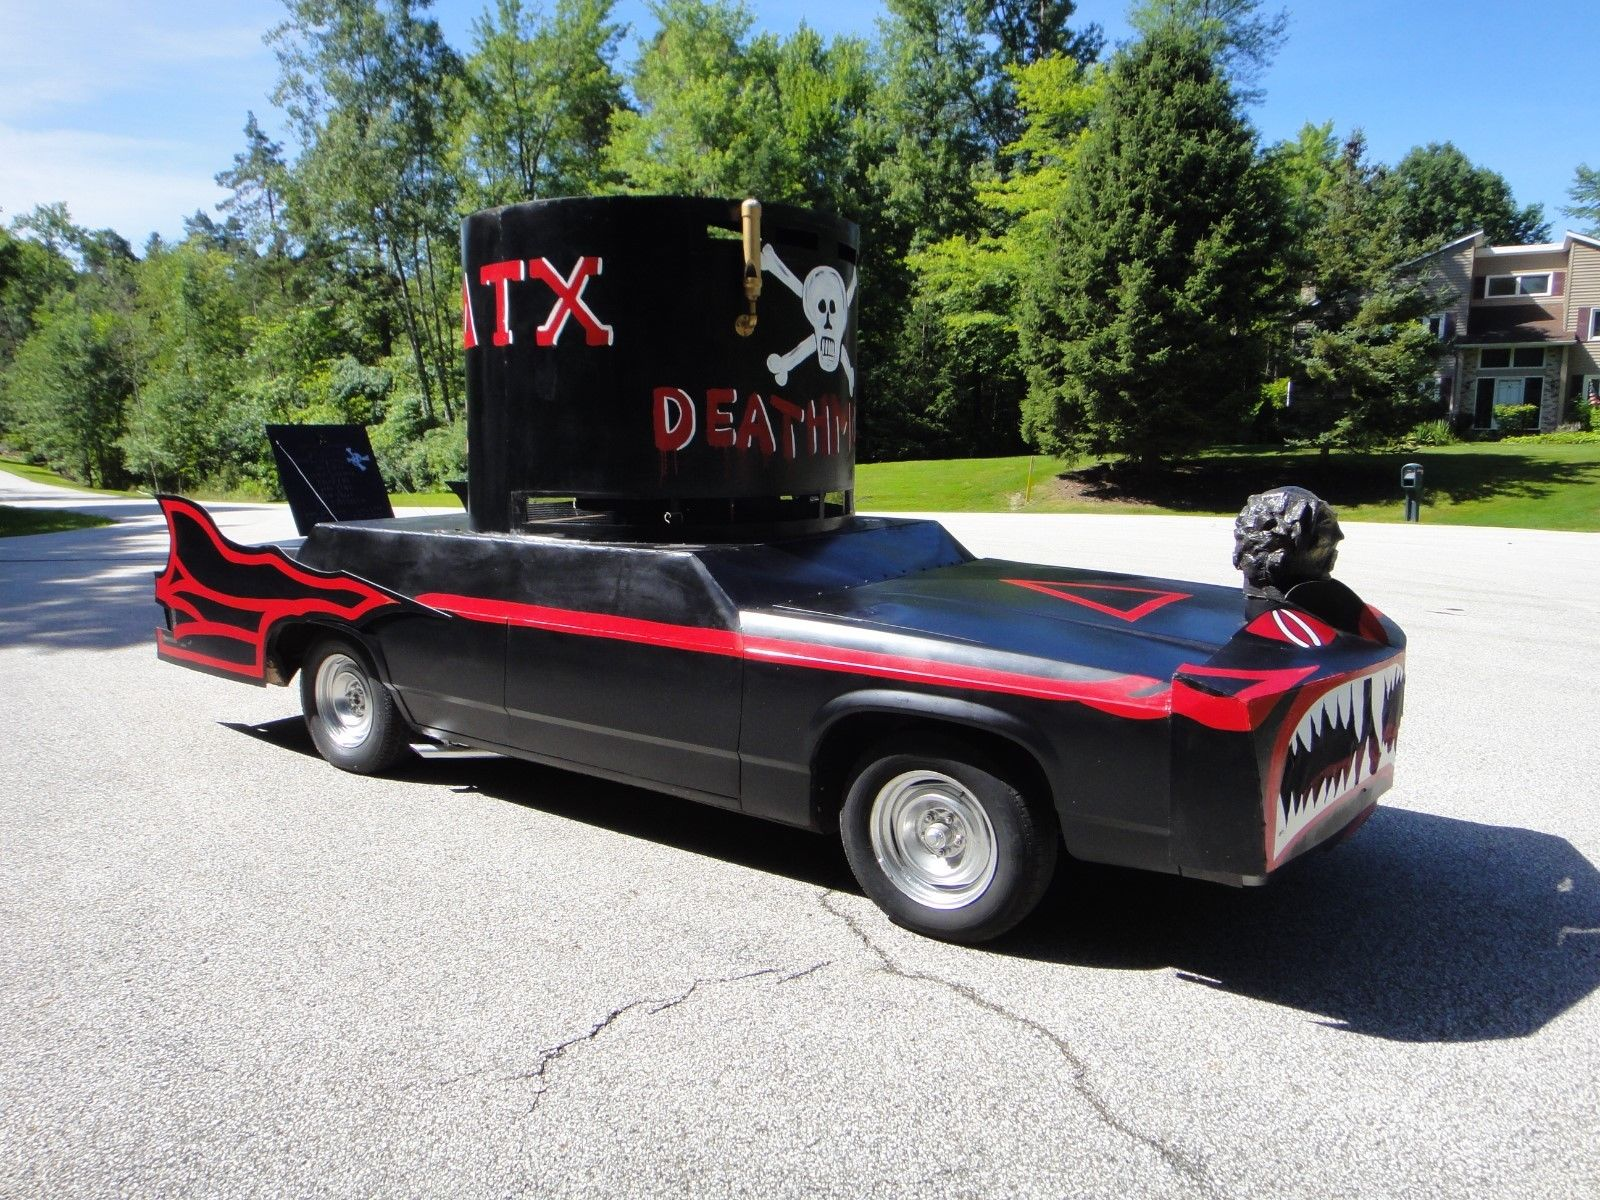 Deathmobile! This Clone Of The Animal House Car Is The Daily Driver You Really Need!